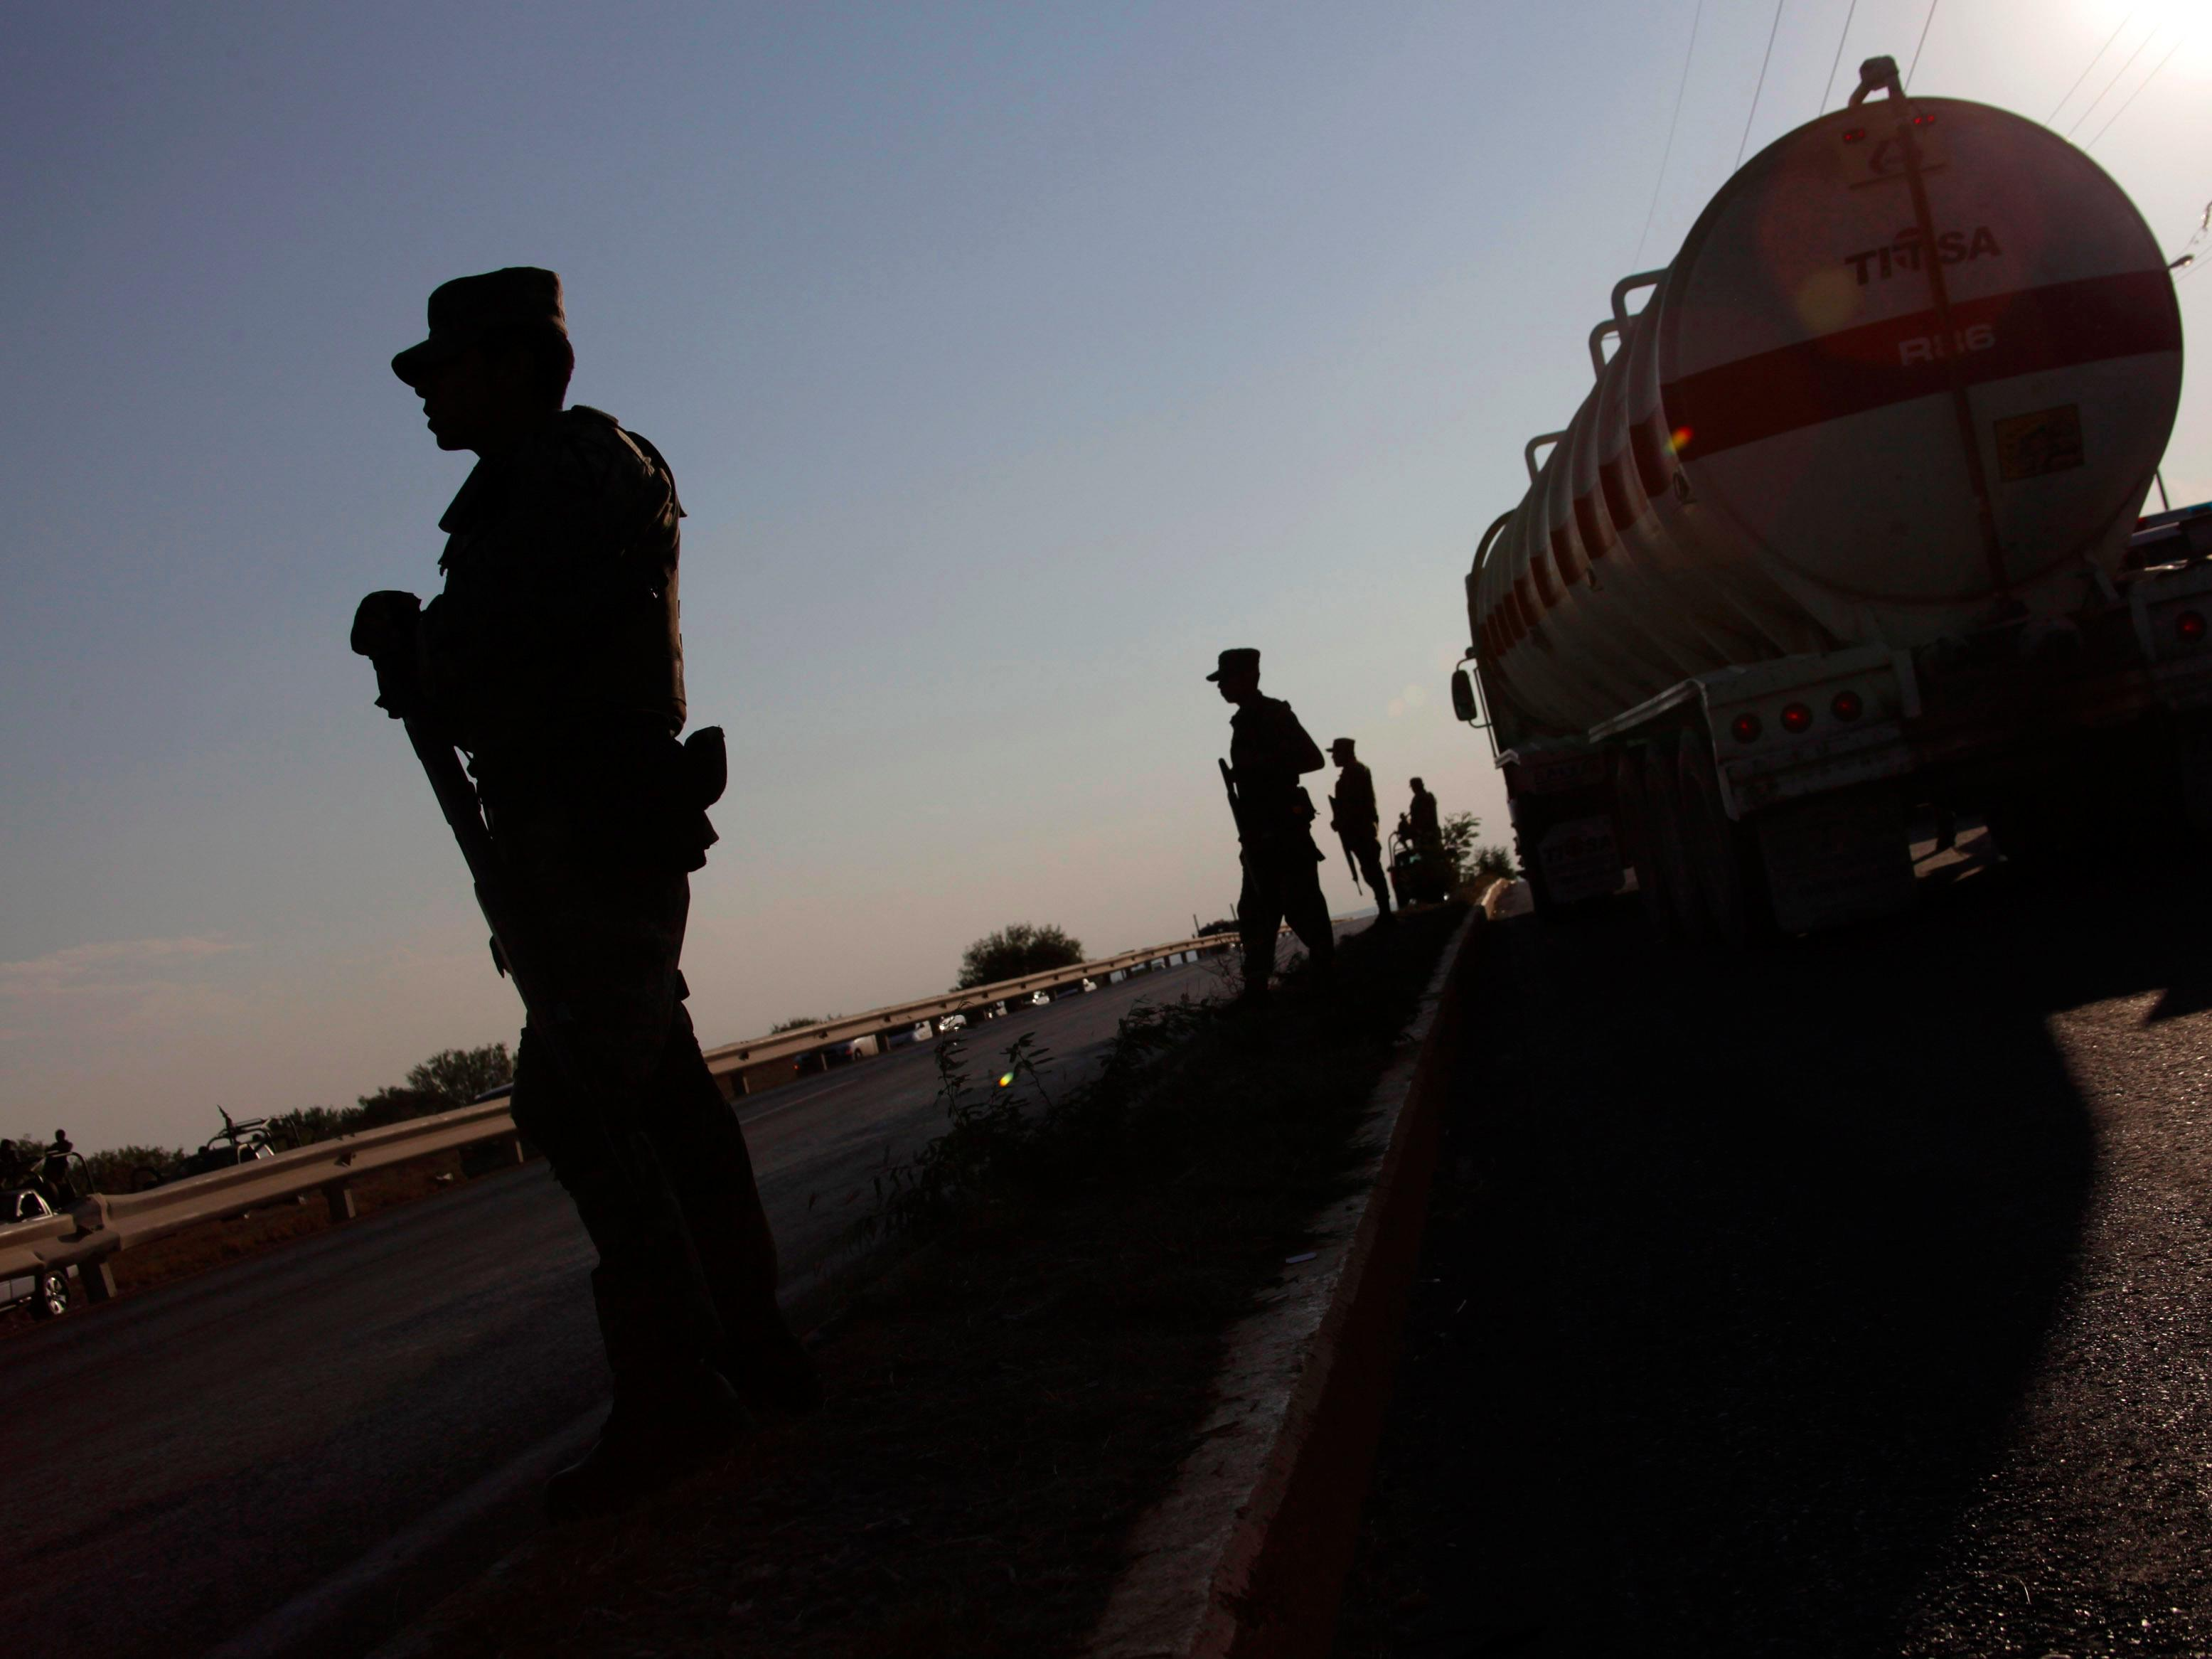 Mexico's oil industry now has an organized-crime problem